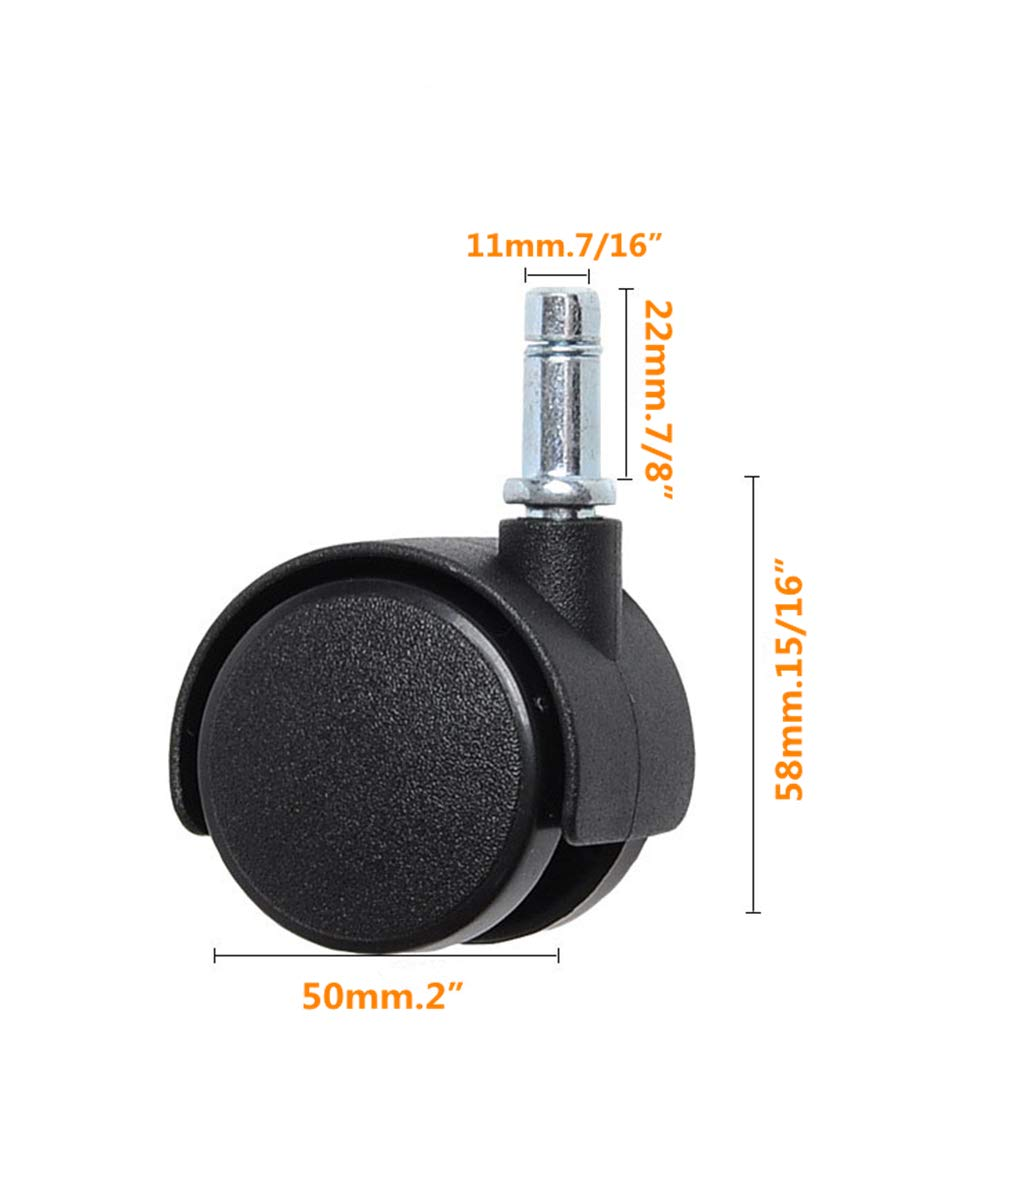 7//16 X 7//8 Mazhashop 5 Packs Office Chair Casters Wheels with Universal Standard Size 11mm Stem Diameter and 22mm Stem Length